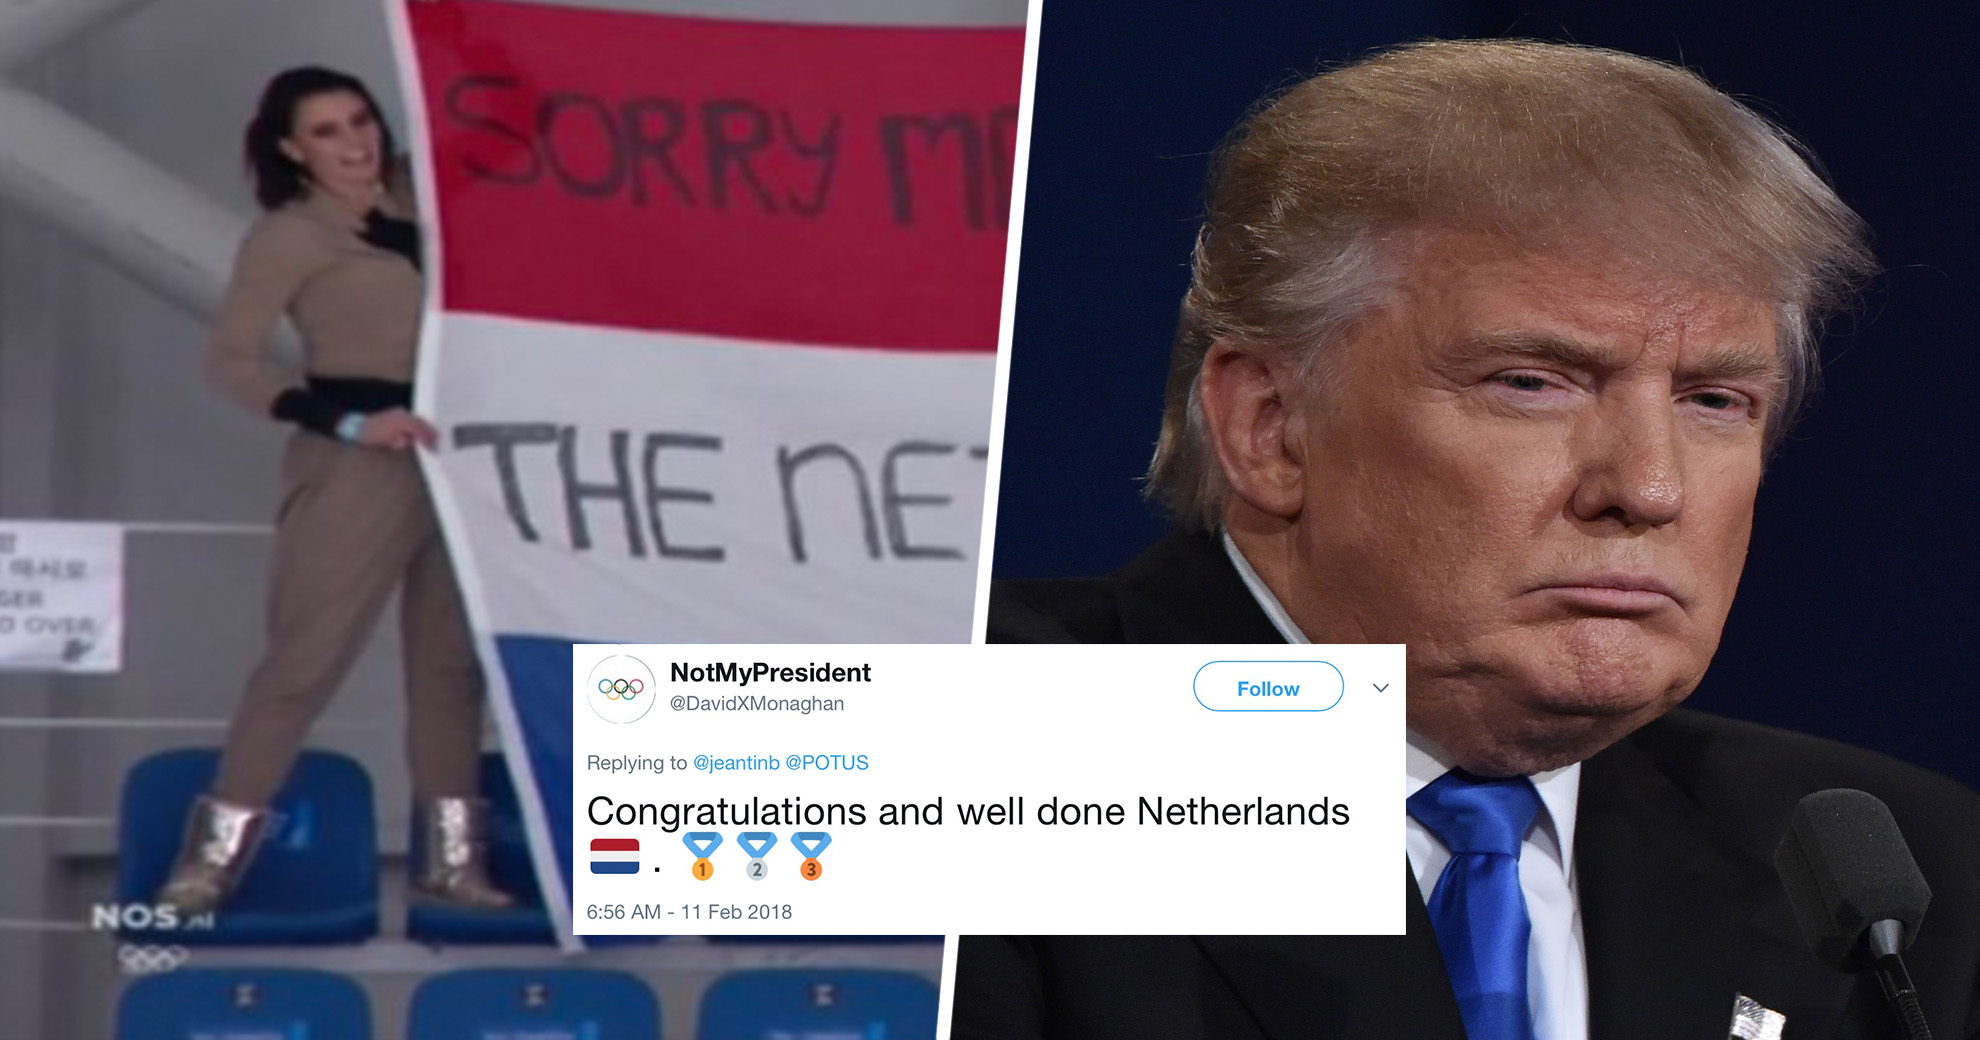 After Podium Sweep At The Olympics, The Netherlands Celebrated By Trolling Trump